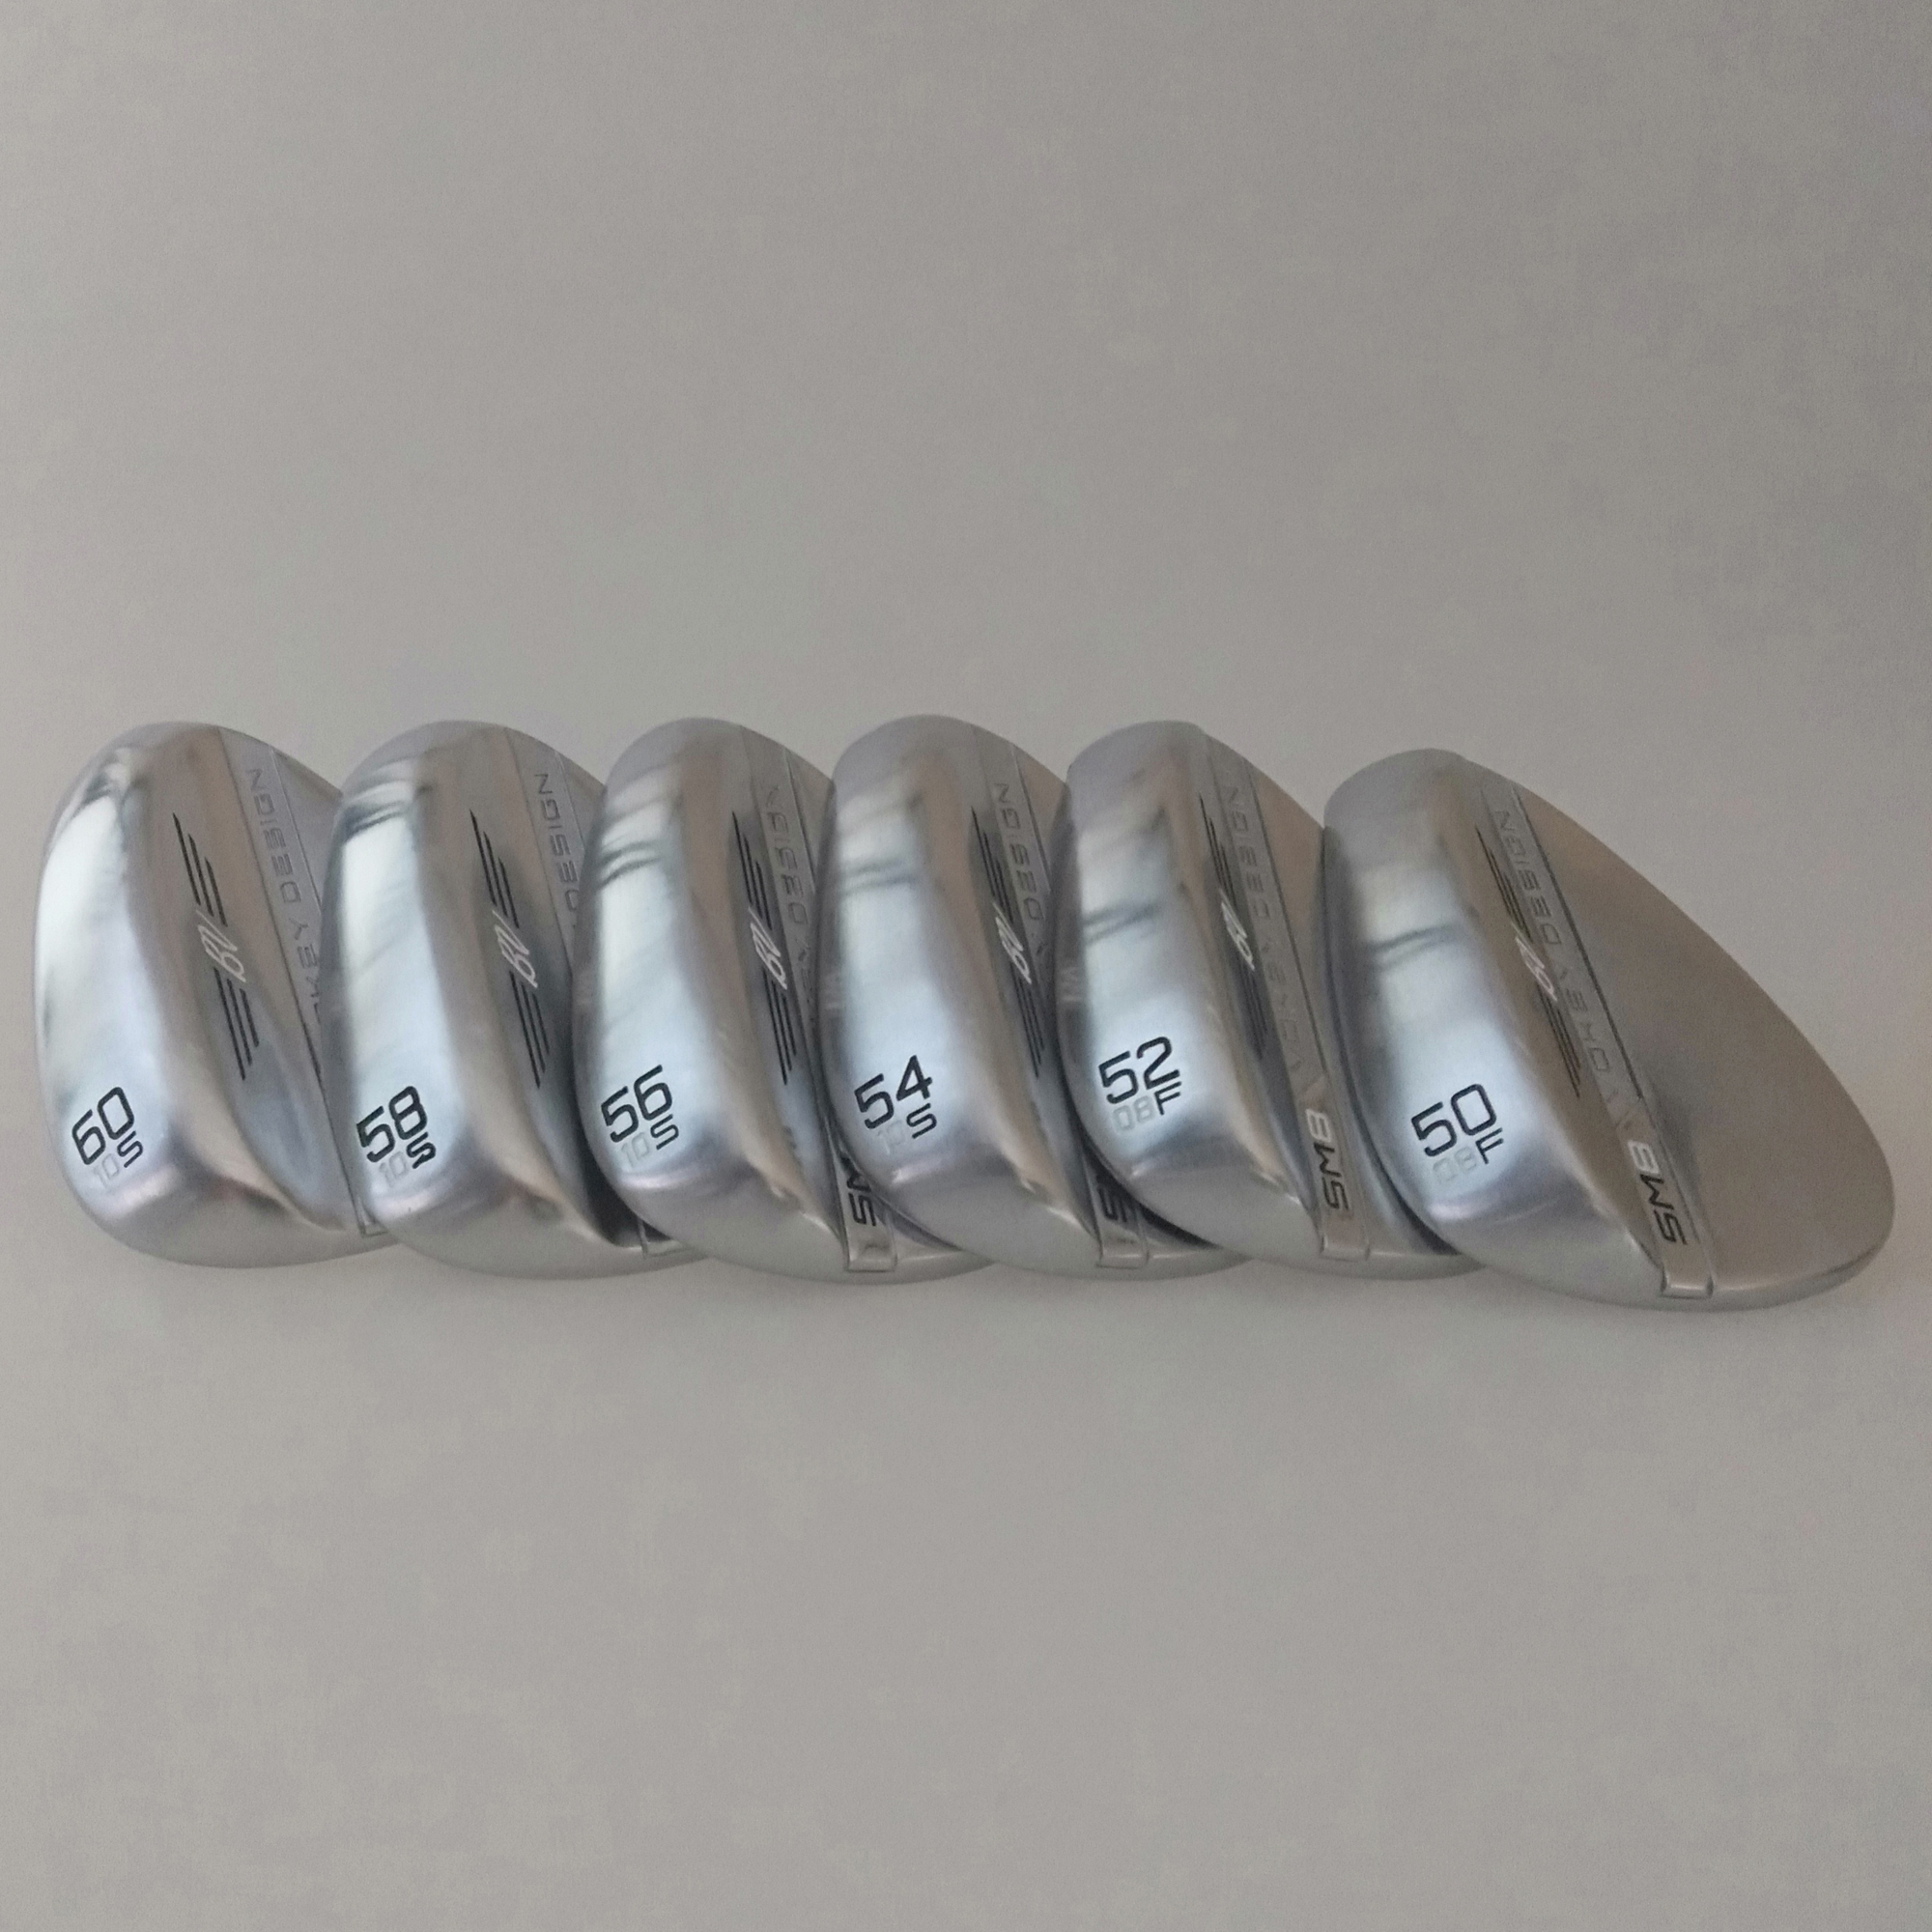 Golf Clubs Sliver SM-8 Wedges 50-60 Graphite Golf Shafts With Headcover Wood Clubs Free Shipping